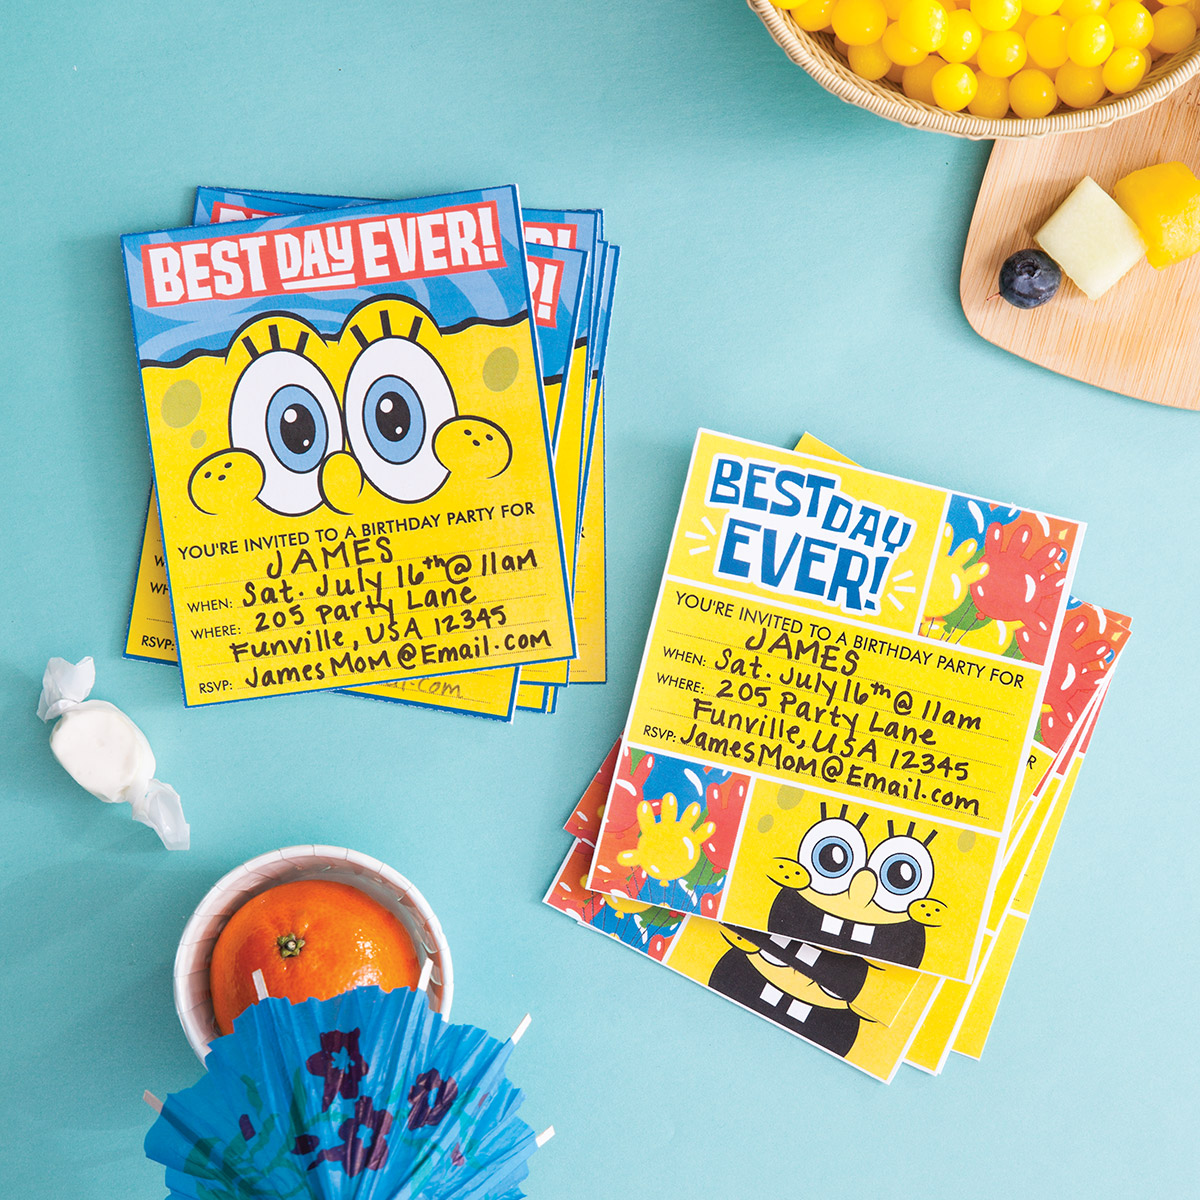 Plan a SpongeBob SquarePants Party – Spongebob Party Invitations